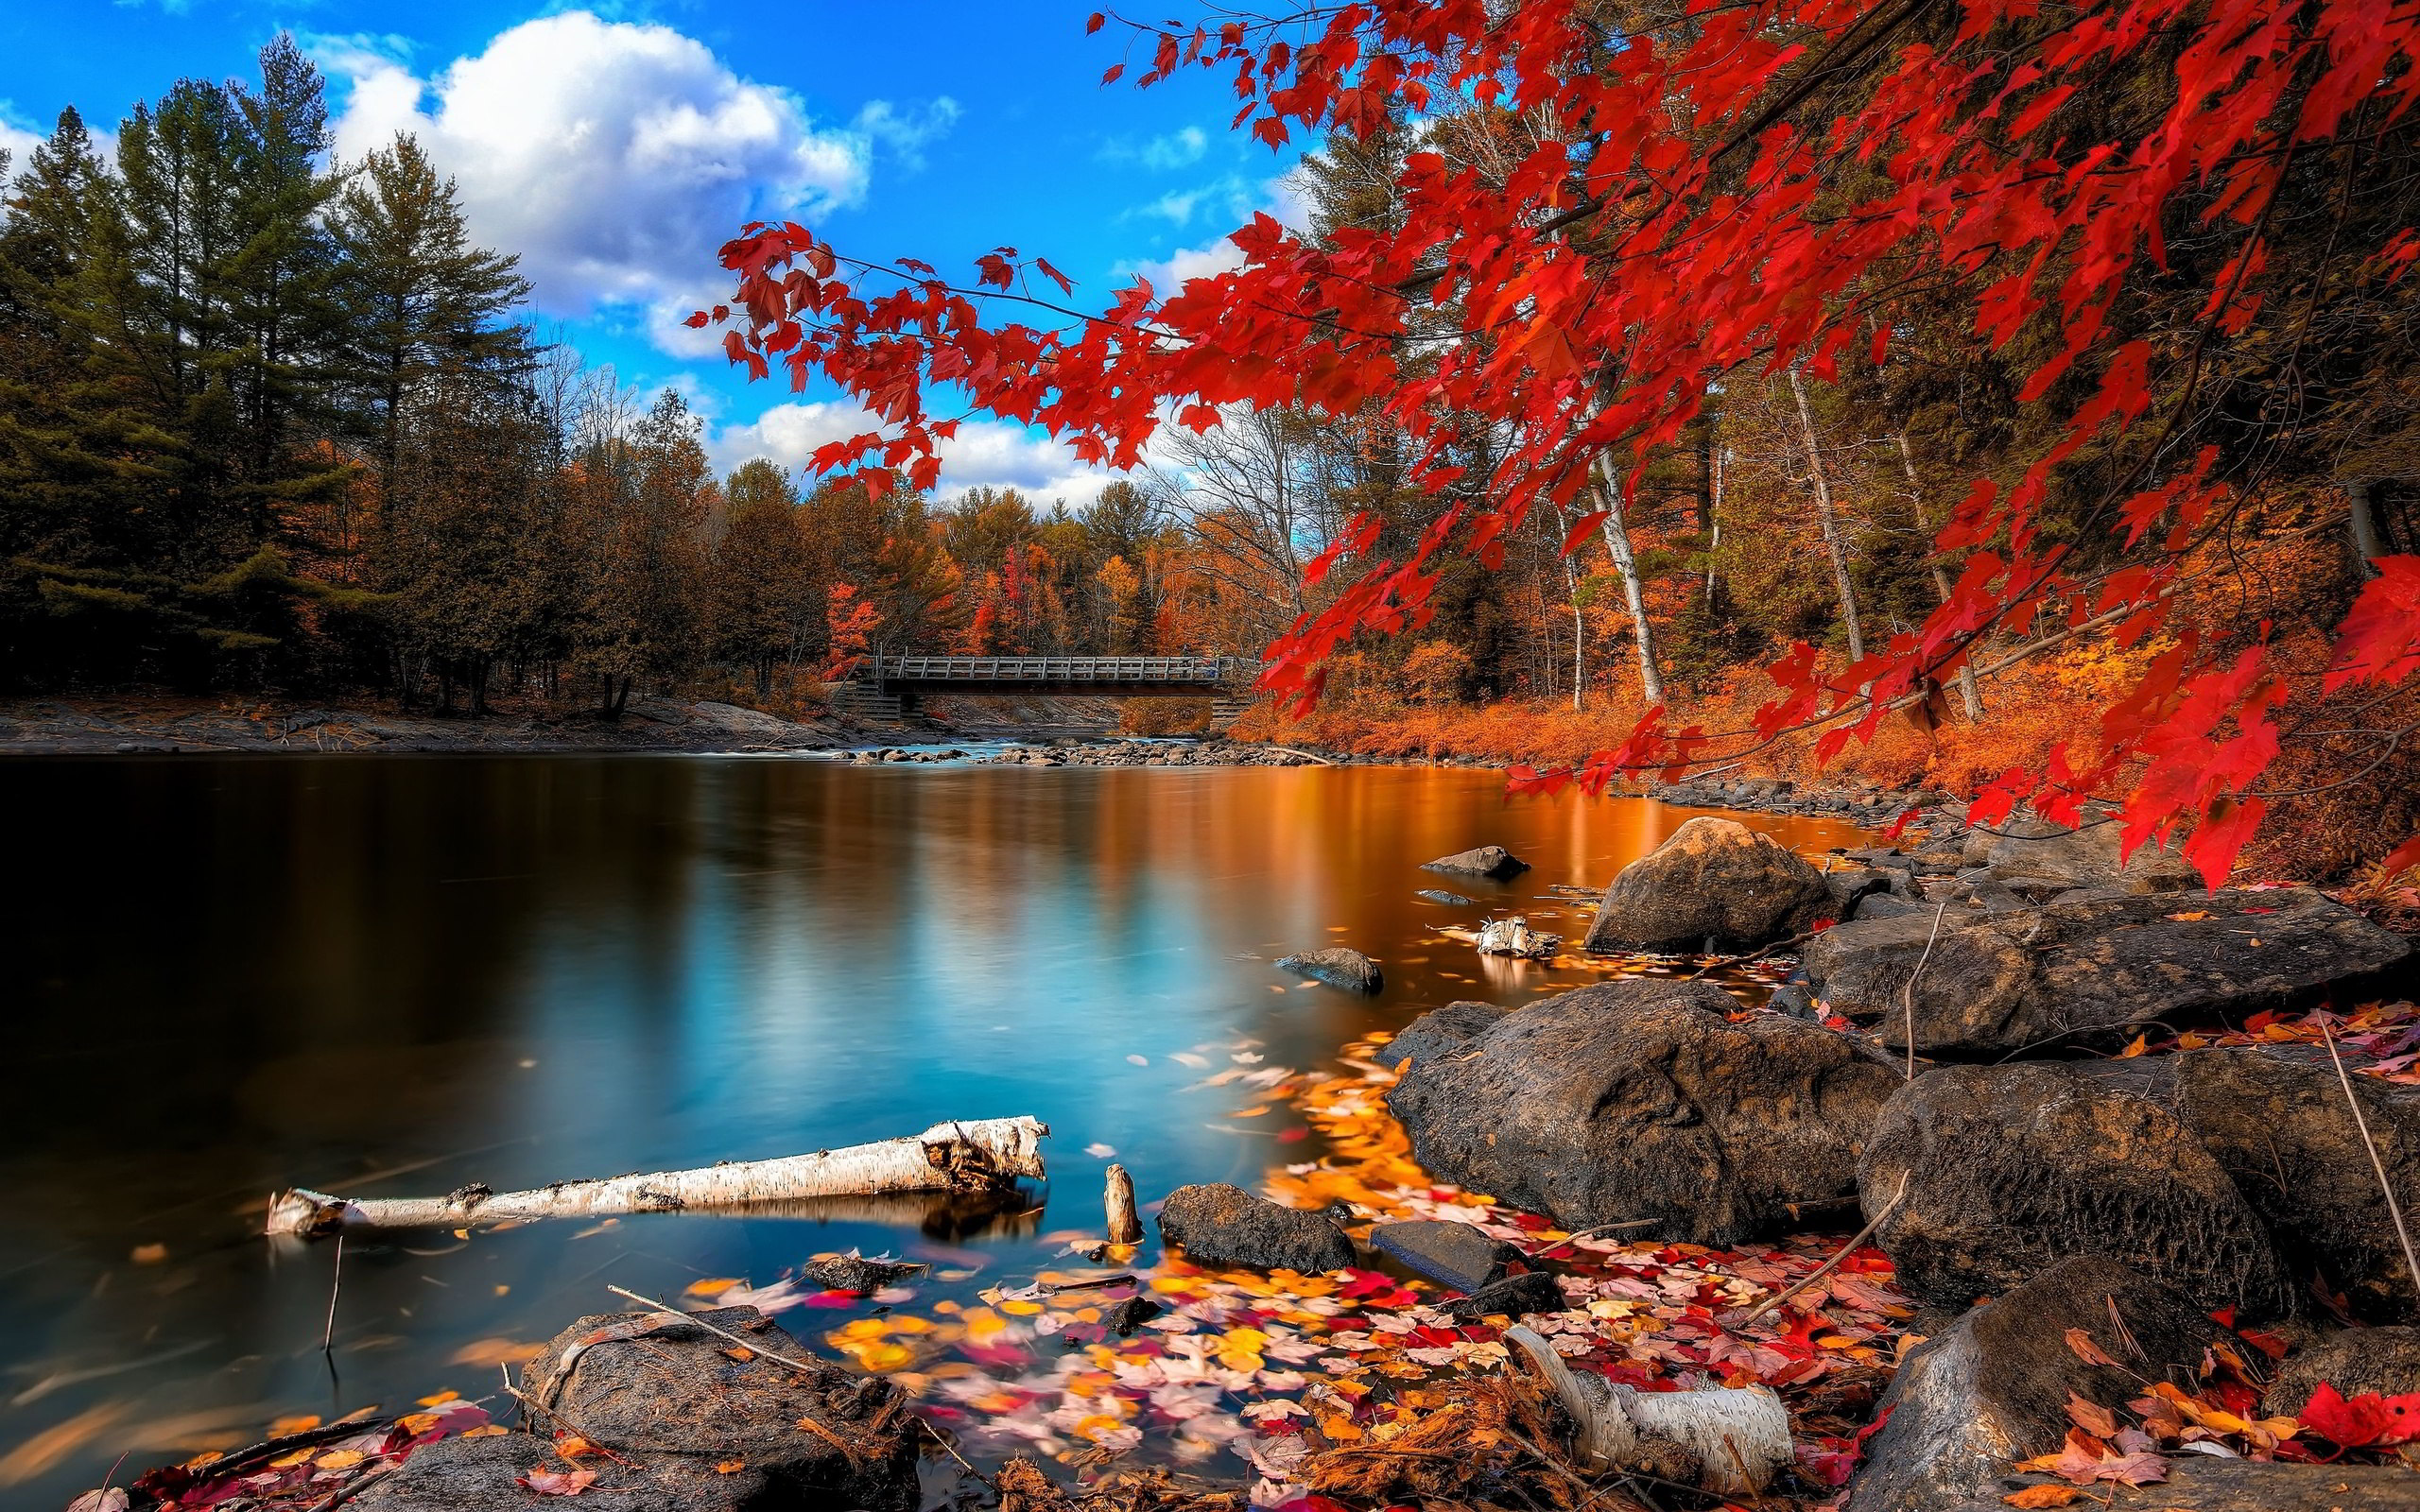 Tranquil River Bed